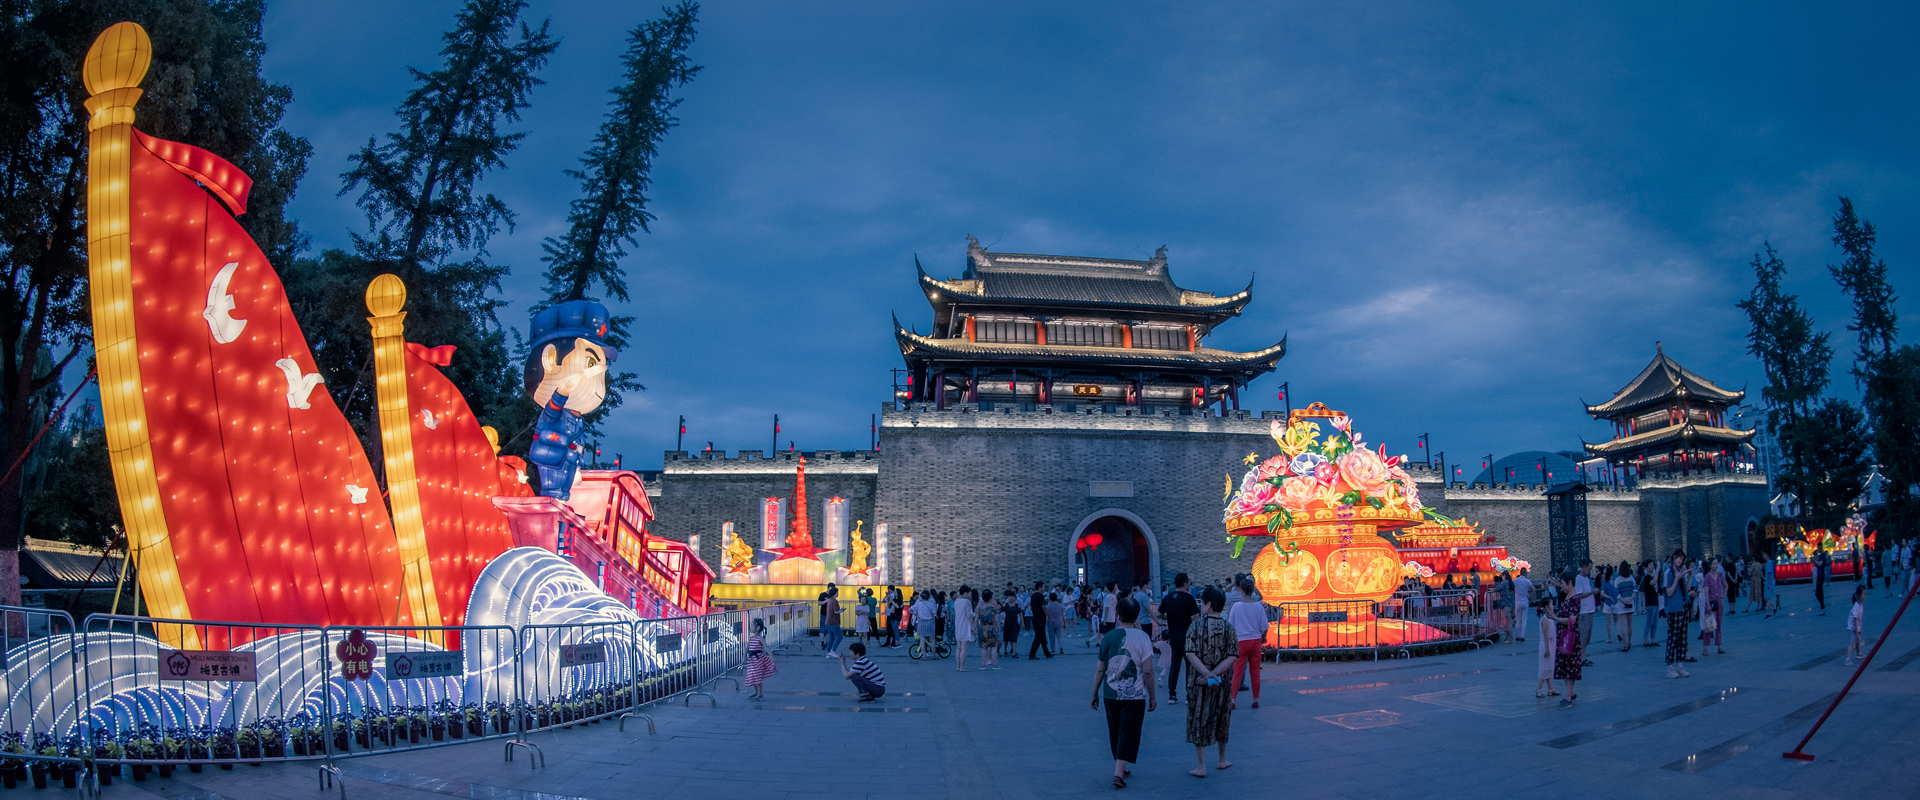 Lanterns light up Wuxi to celebrate CPC's 100th anniversary